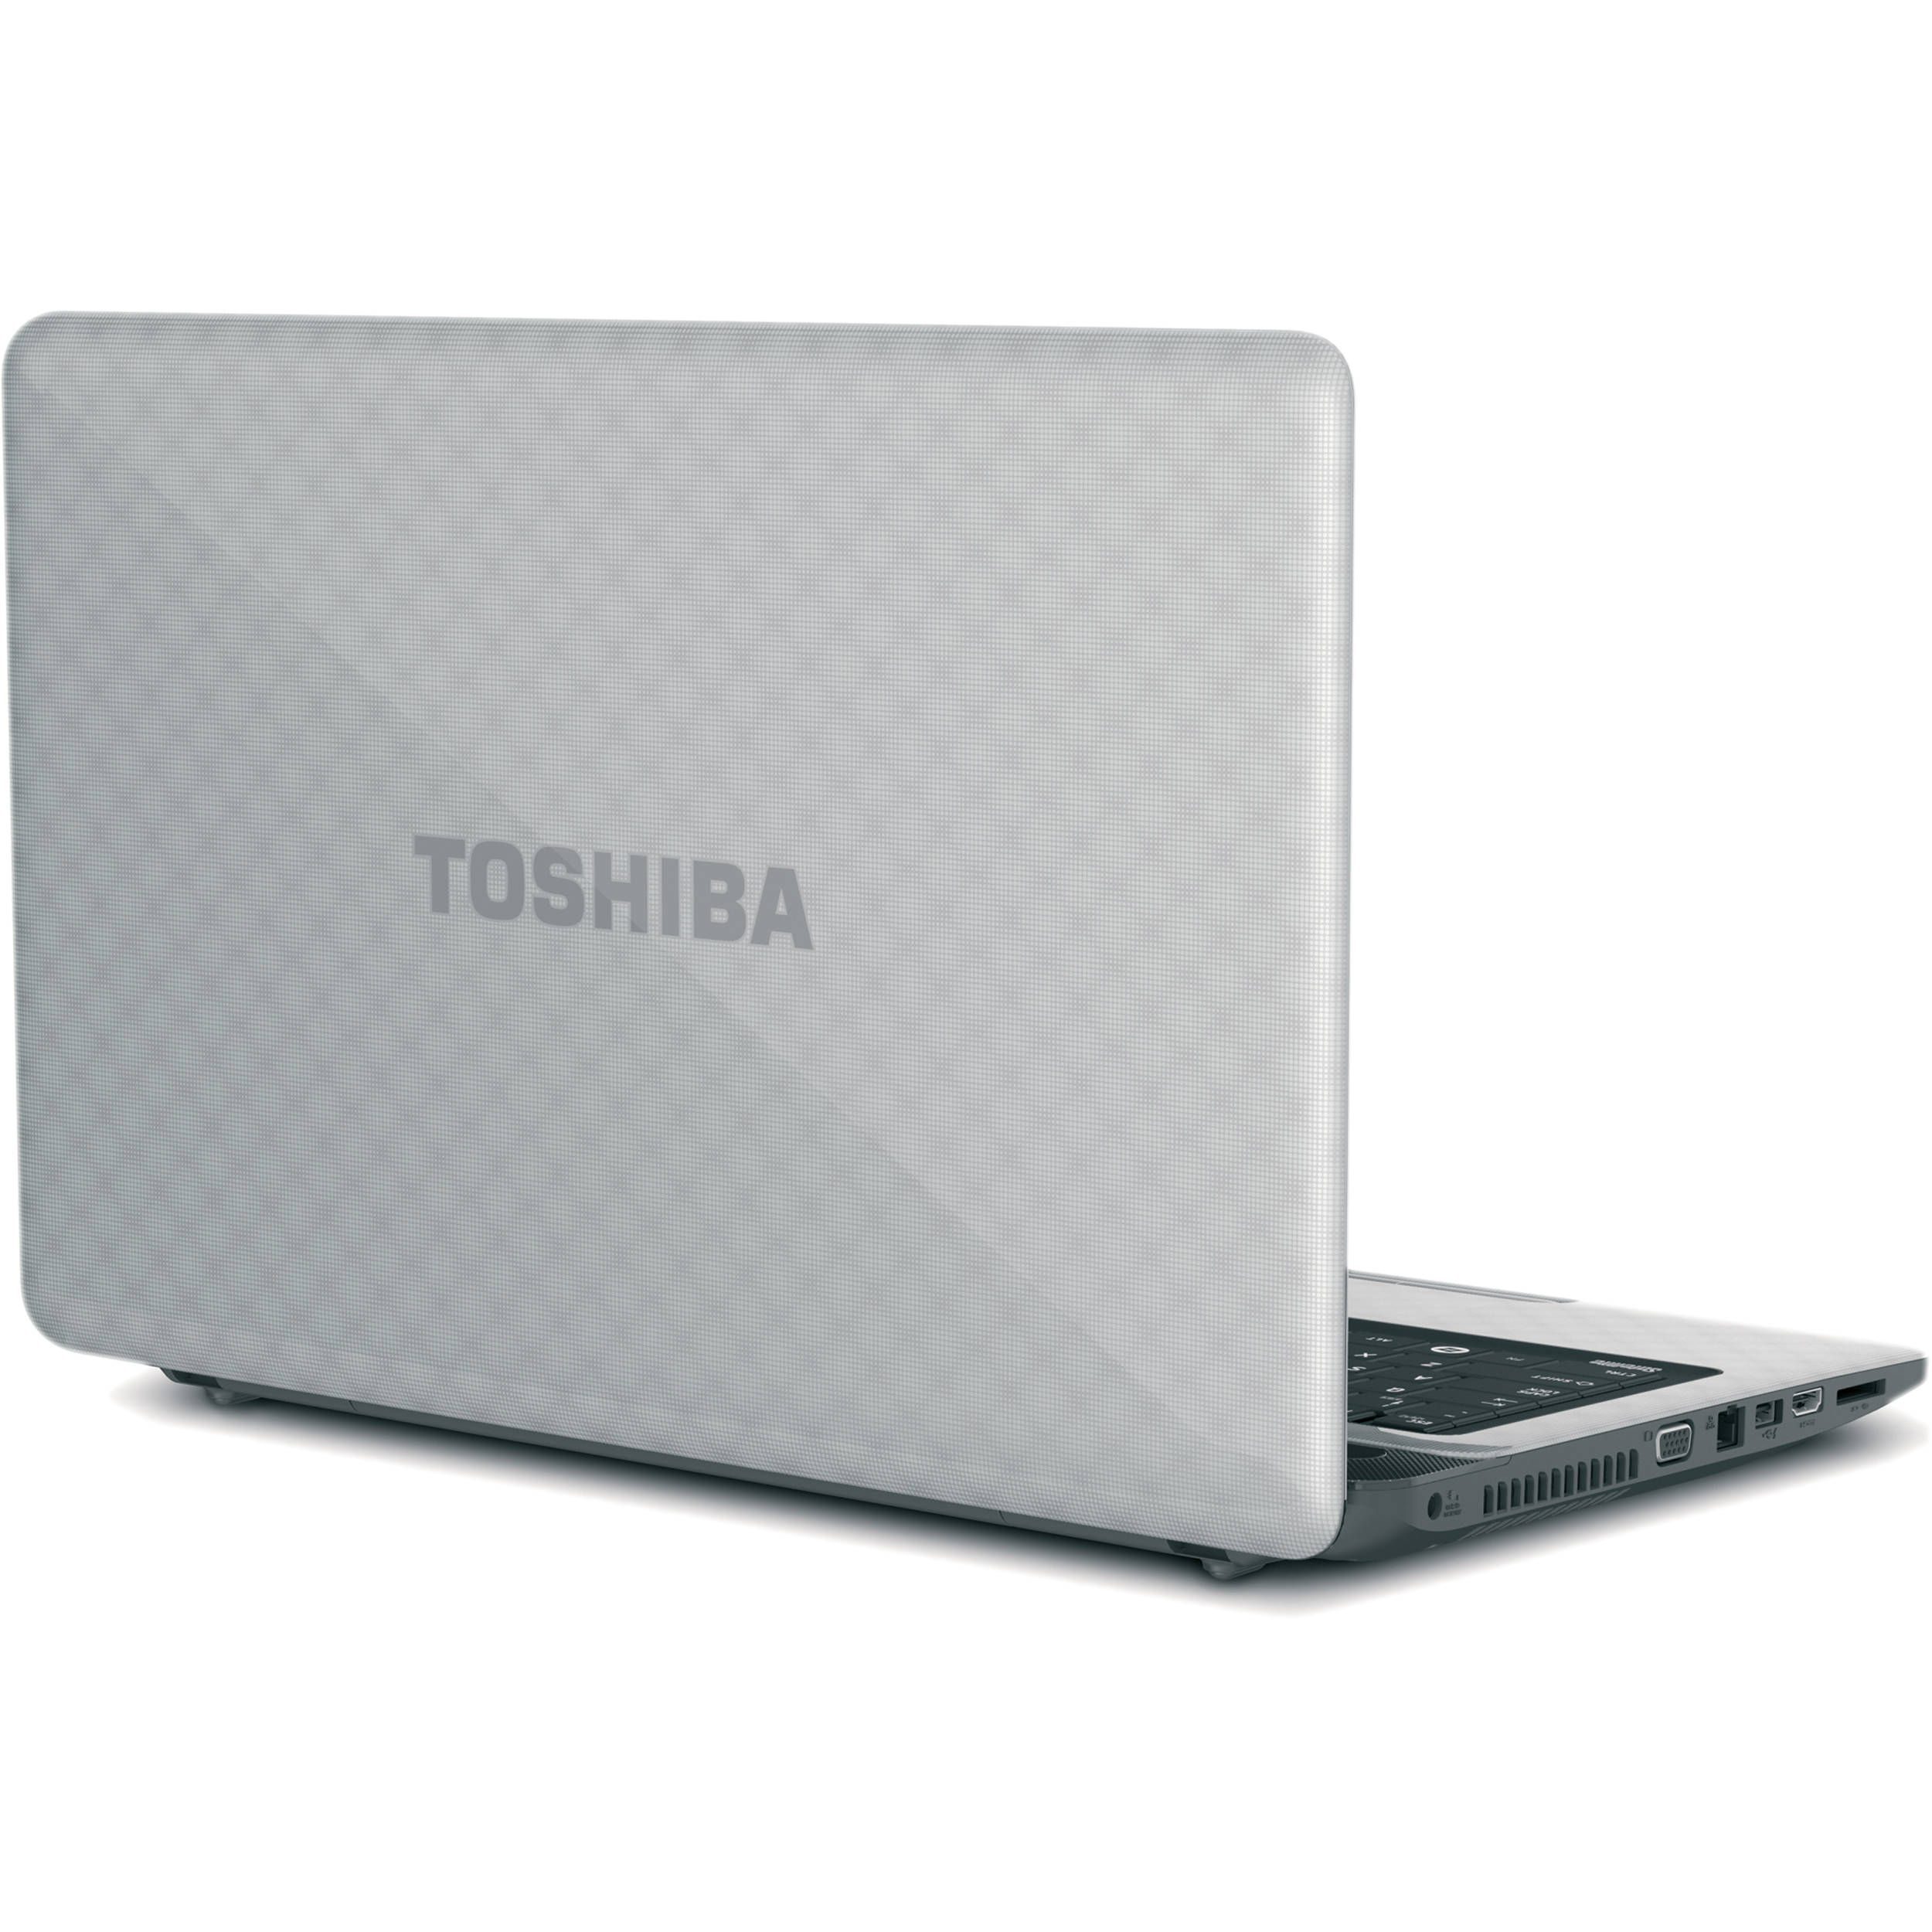 DRIVERS UPDATE: TOSHIBA SATELLITE L775D ECO